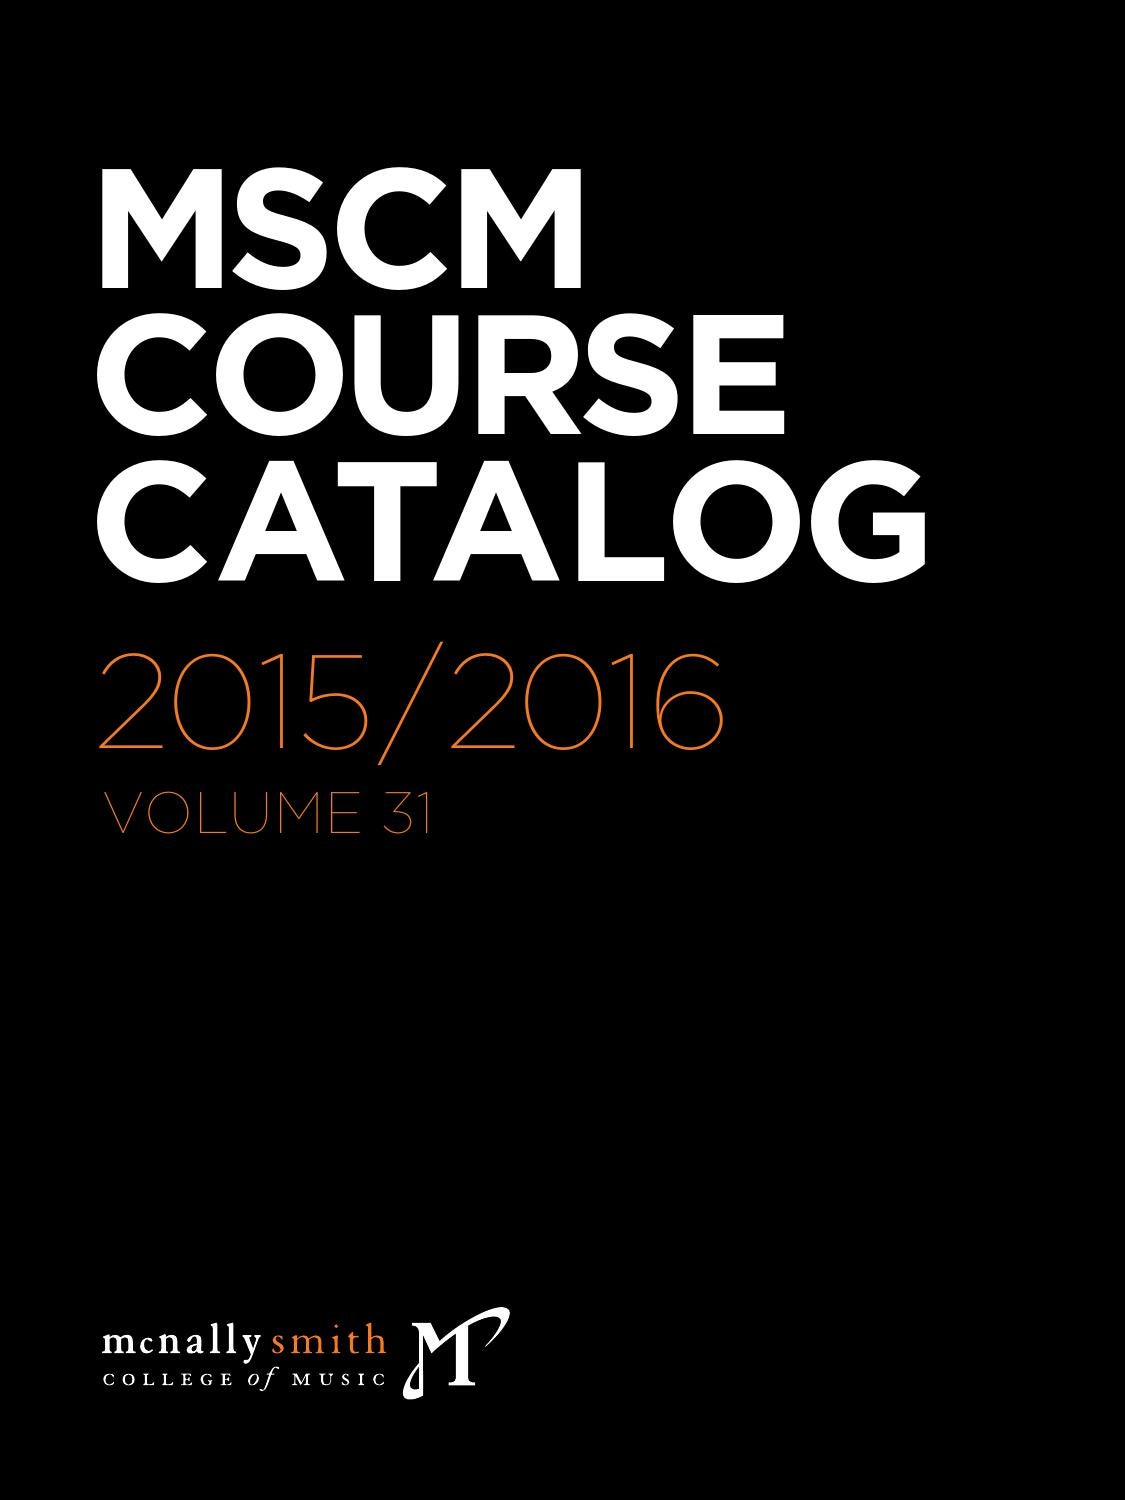 Mcnally Smith Course Catalog 2015 2016 By College Of Jguitar Will Draw Chord Diagrams For Each The Symbols Entered Music Issuu